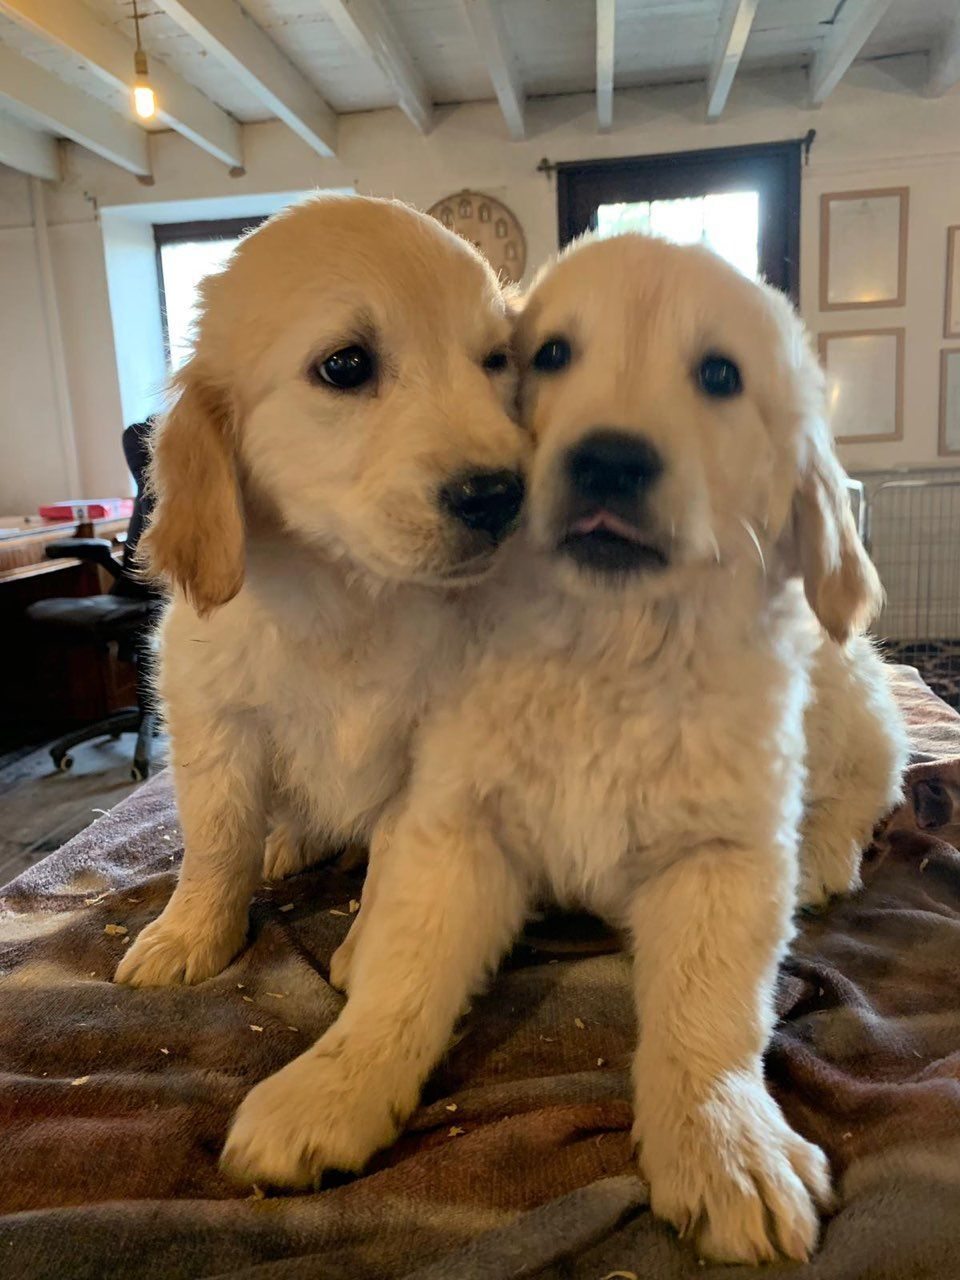 Stunning Golden Retriever Pups for sale in Kuwait